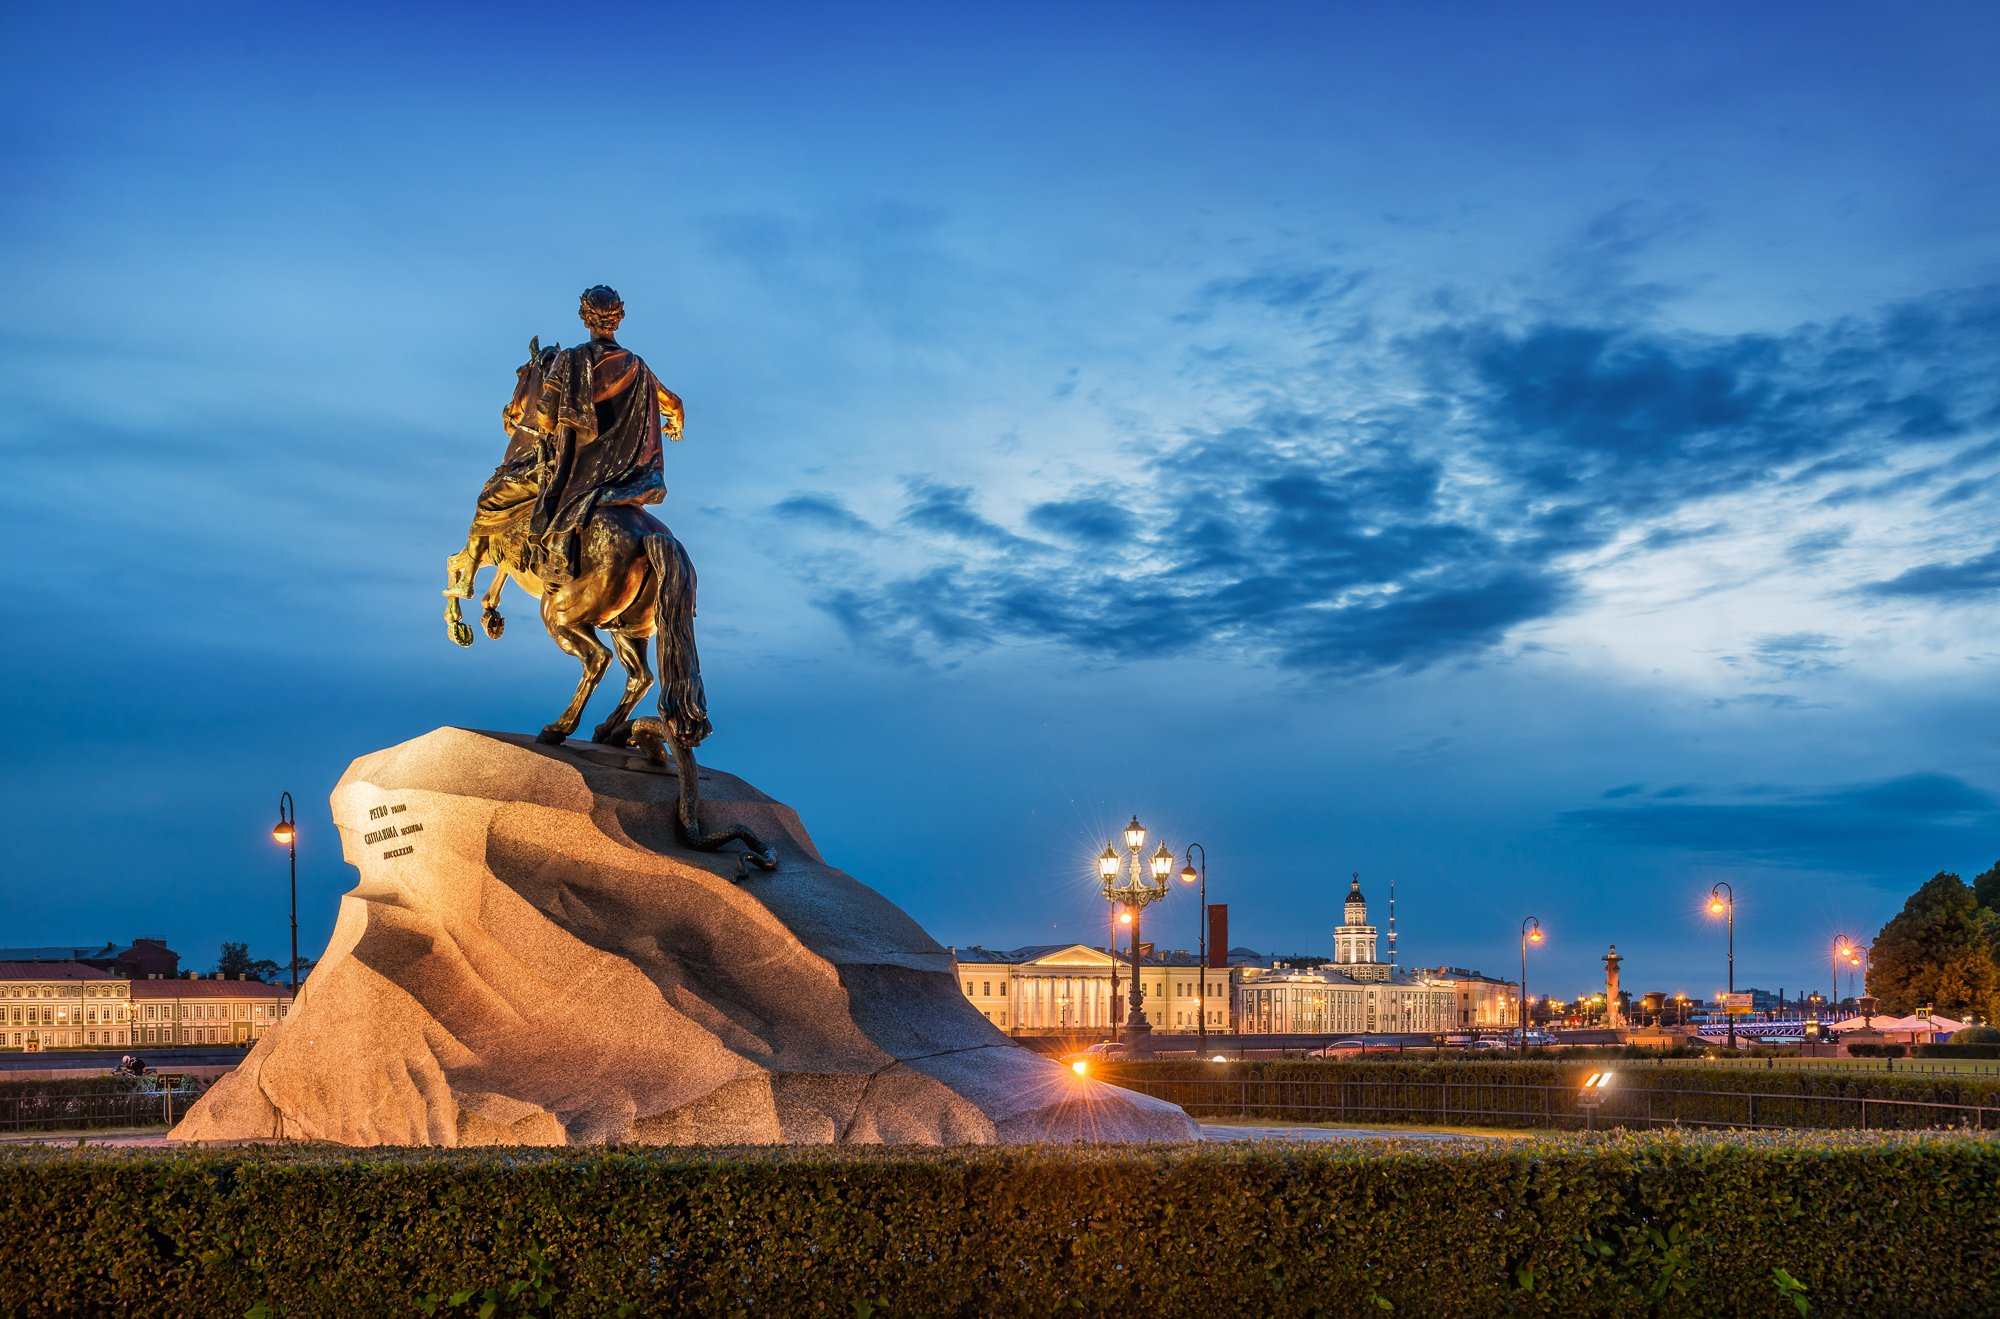 3 days in St Petersburg: visit Monument to Peter the Great on the Senate Square in St. Petersburg in the evening light of a white summer night